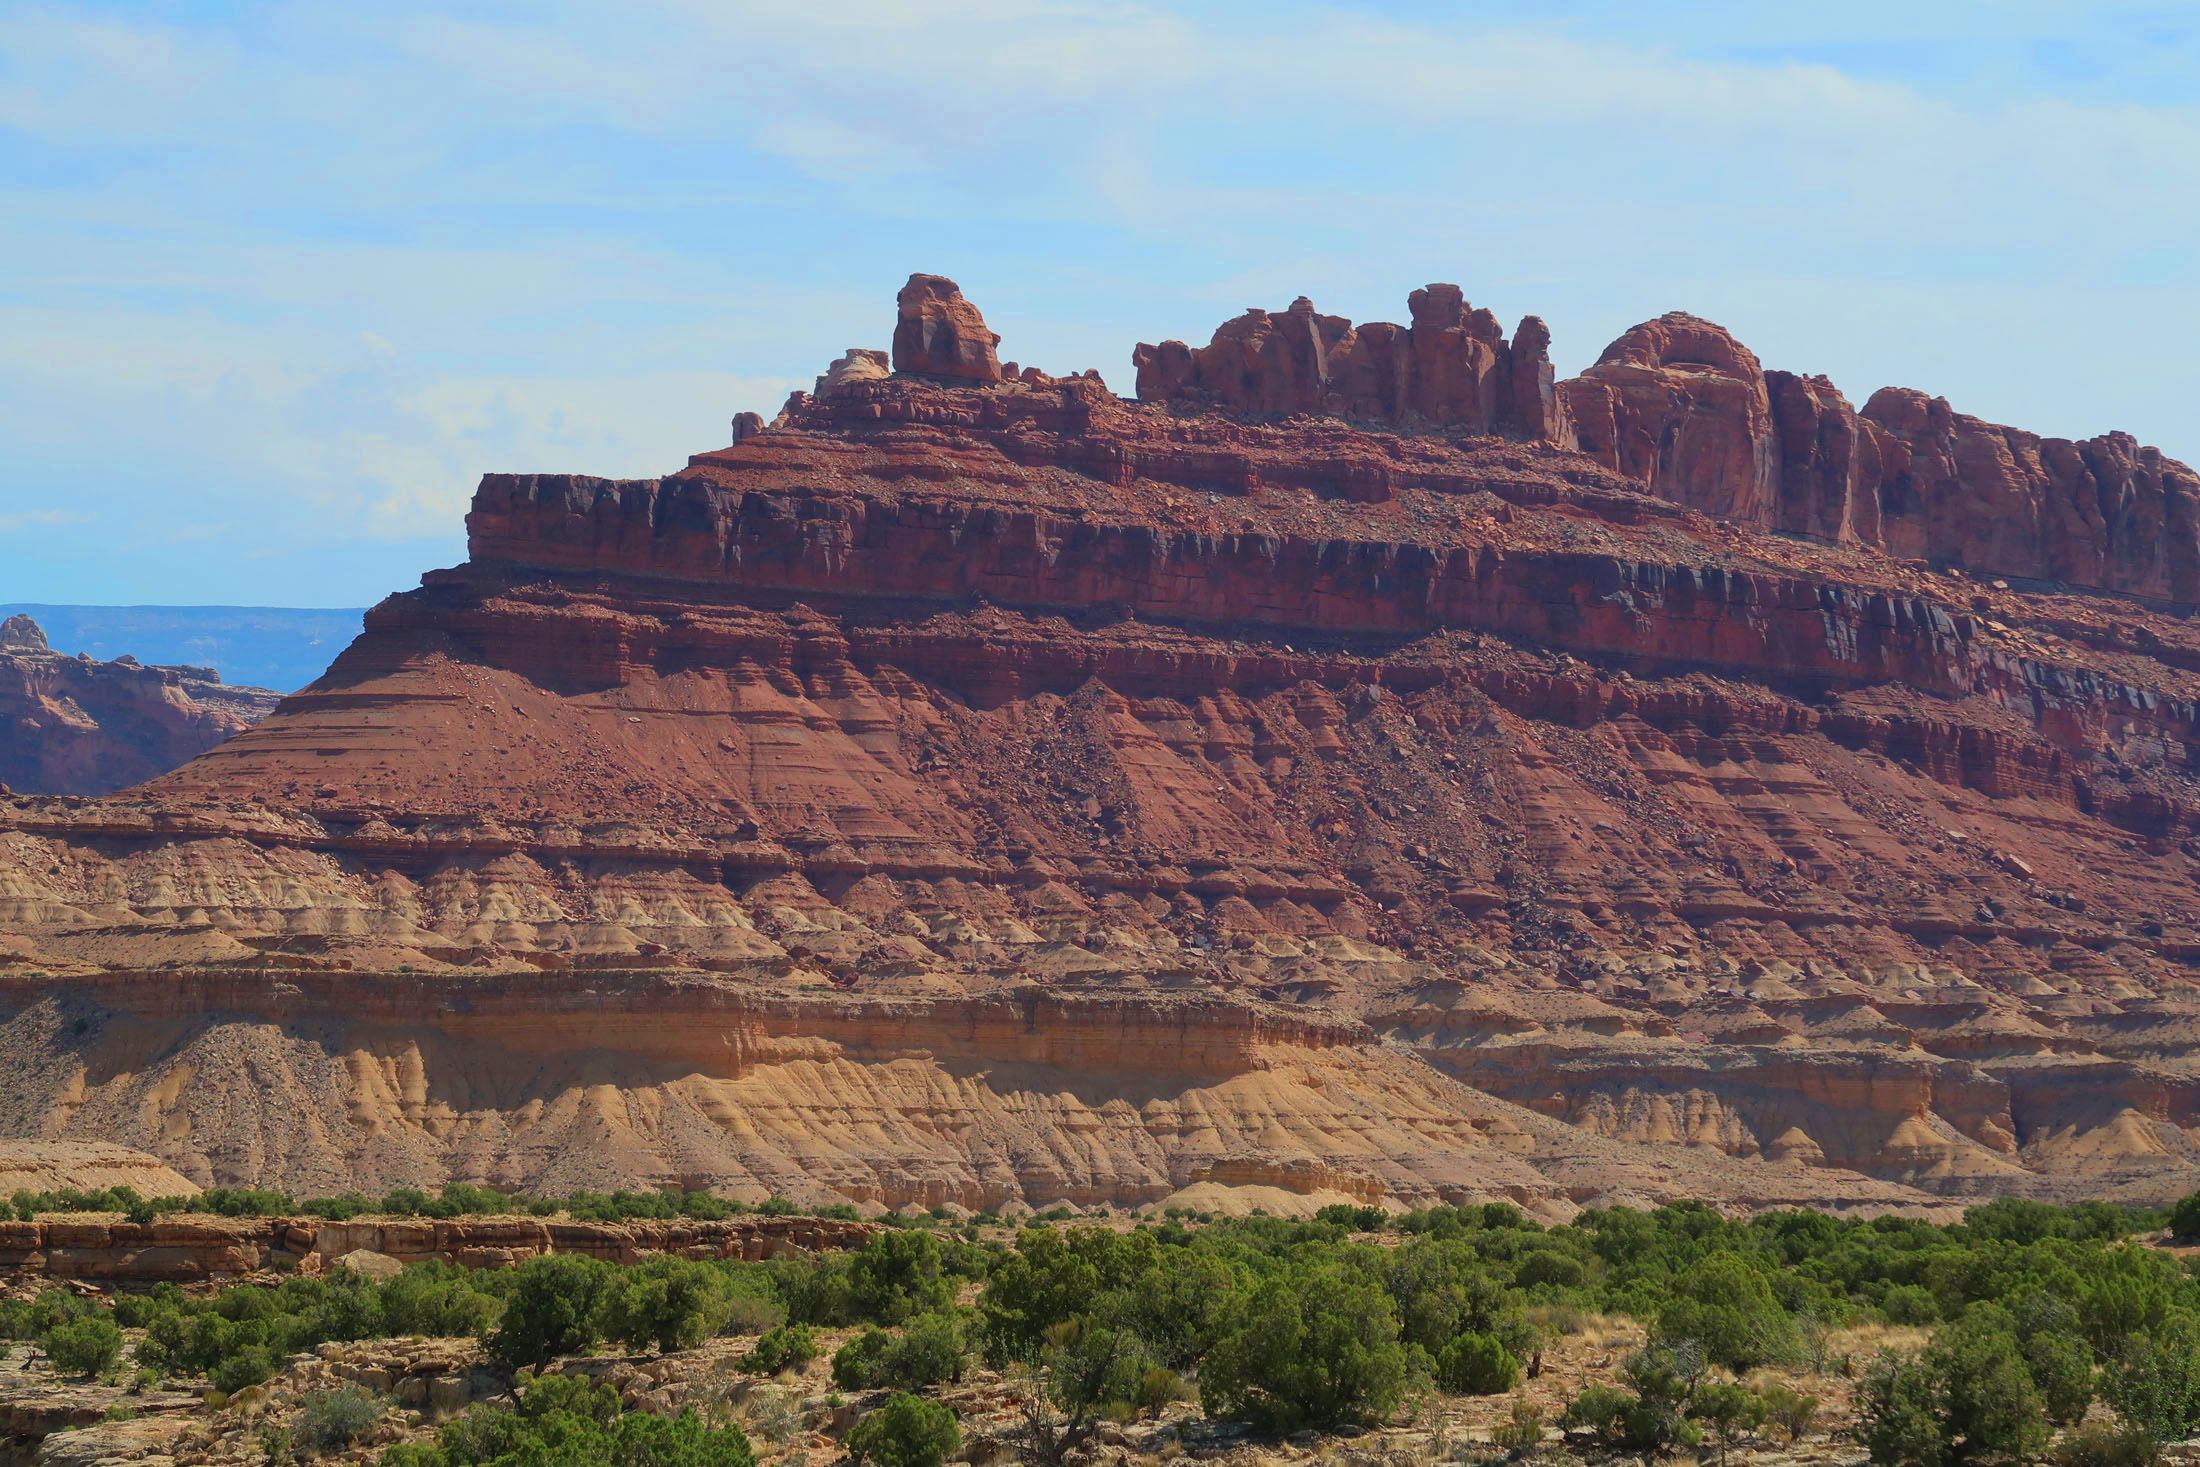 The colorful cliffs of the San Rafael Reef in Utah are composed of sedimentary layers of rock deposited more than 250 million years ago. (Craig Davis/Craigslegztravels.com)